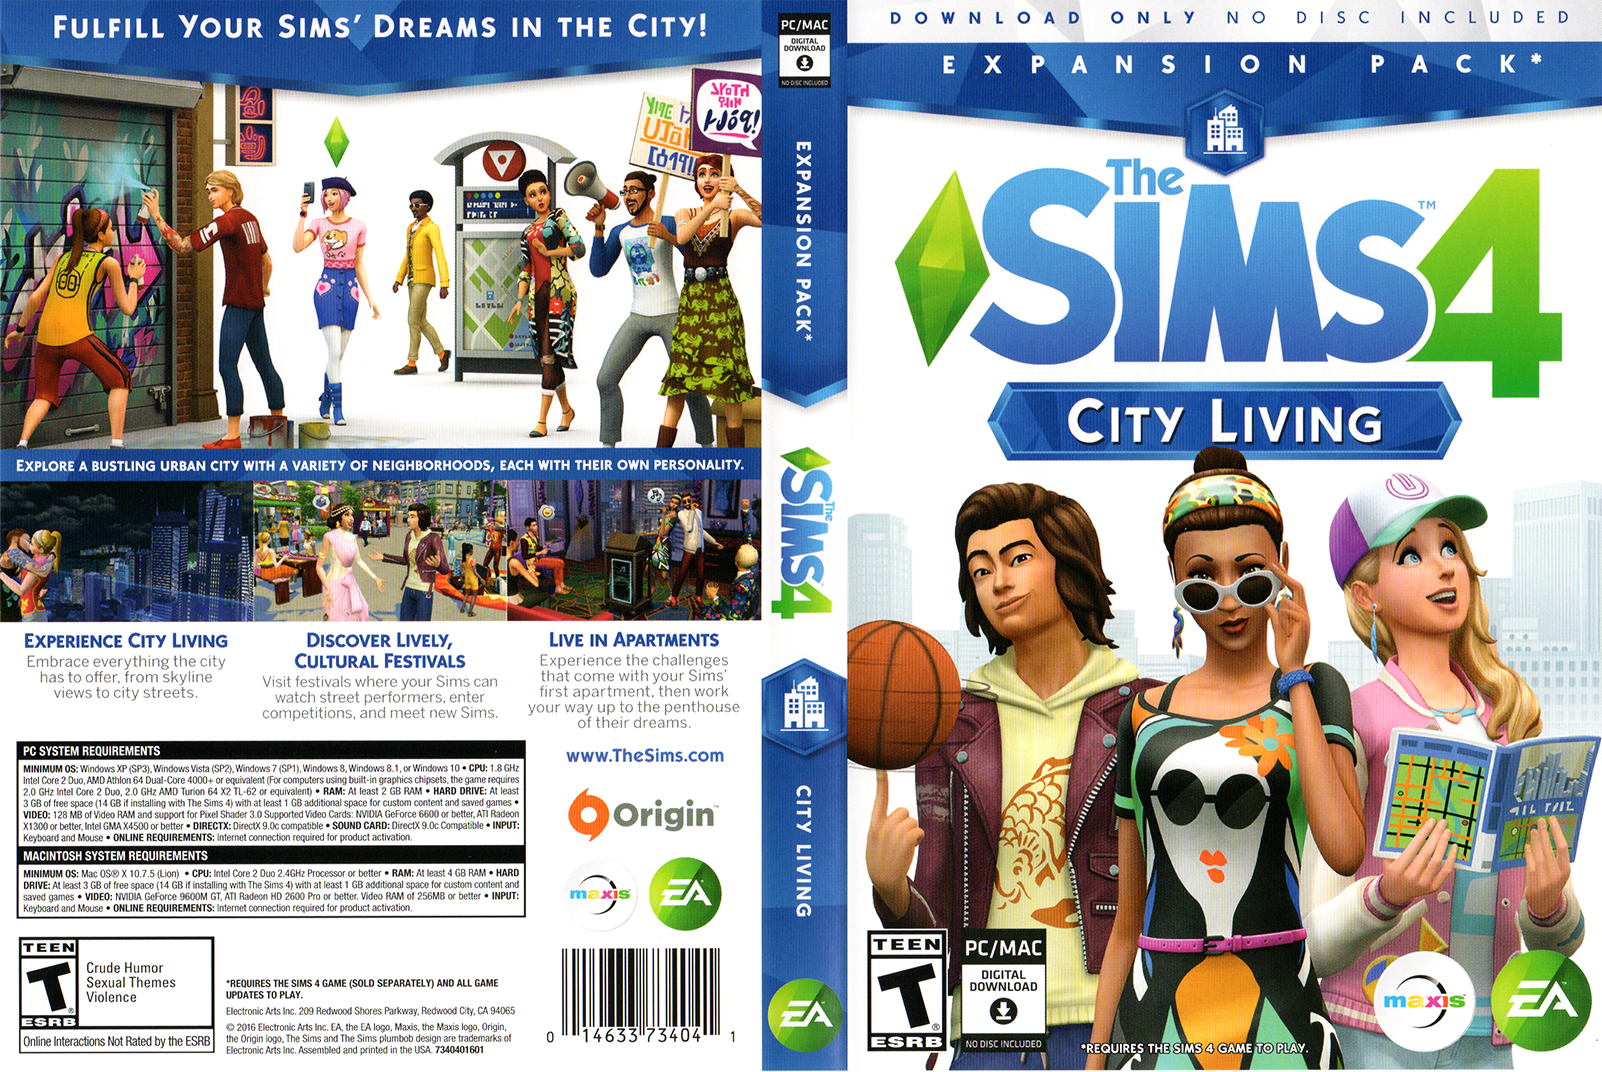 The Sims 4 City Living Full Box Art Simsvip Sims 4 City Living Sims Sims 4